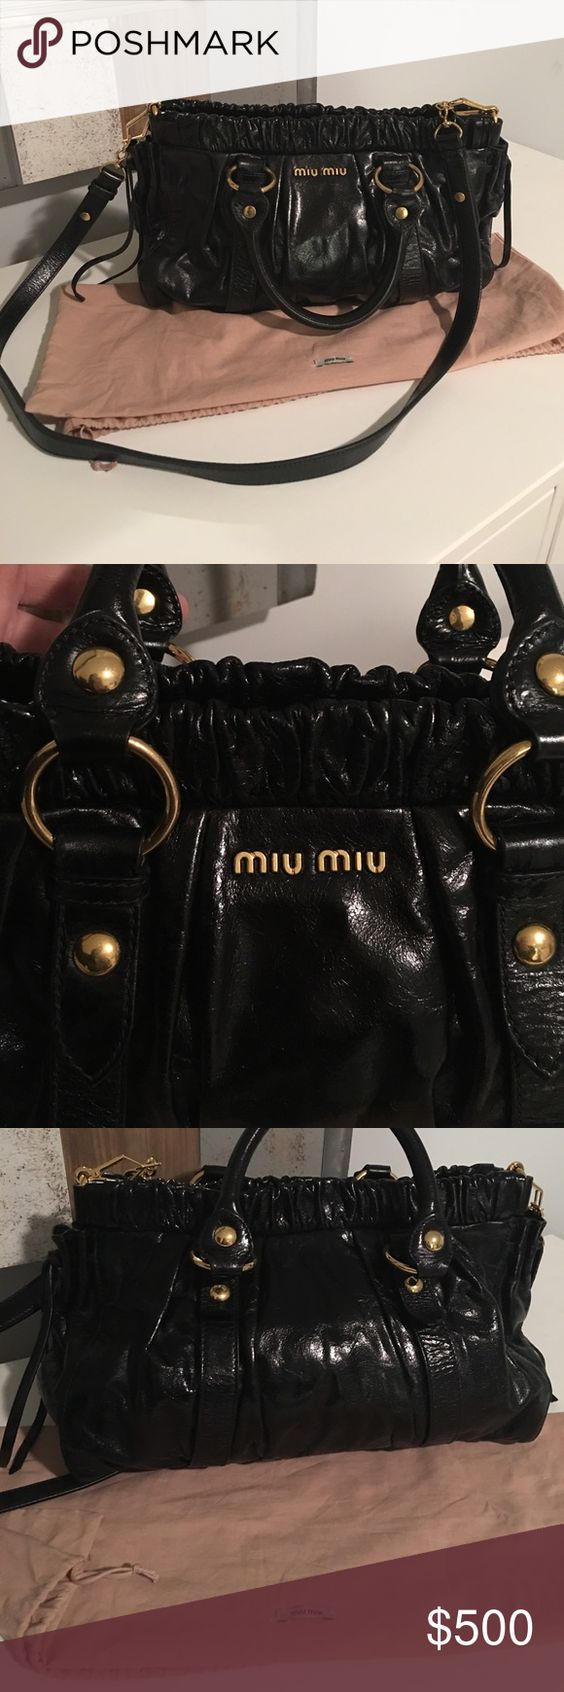 💯% Auth Miu Miu Black Gathered Tote Gold Hardware This is an authentic MIU MIU Vitello Lux Gathered Tote in Black.  This stylish tote is crafted of distressed black leather that is gathered at the top. The bag features rolled leather top handles with large polished brass links and studs, an optional leather shoulder strap and heavily gathered cinch-style top edge. This opens with a button snap to a black fabric interior with a zipper and patch pocket. This is a marvelous tote for everyday…